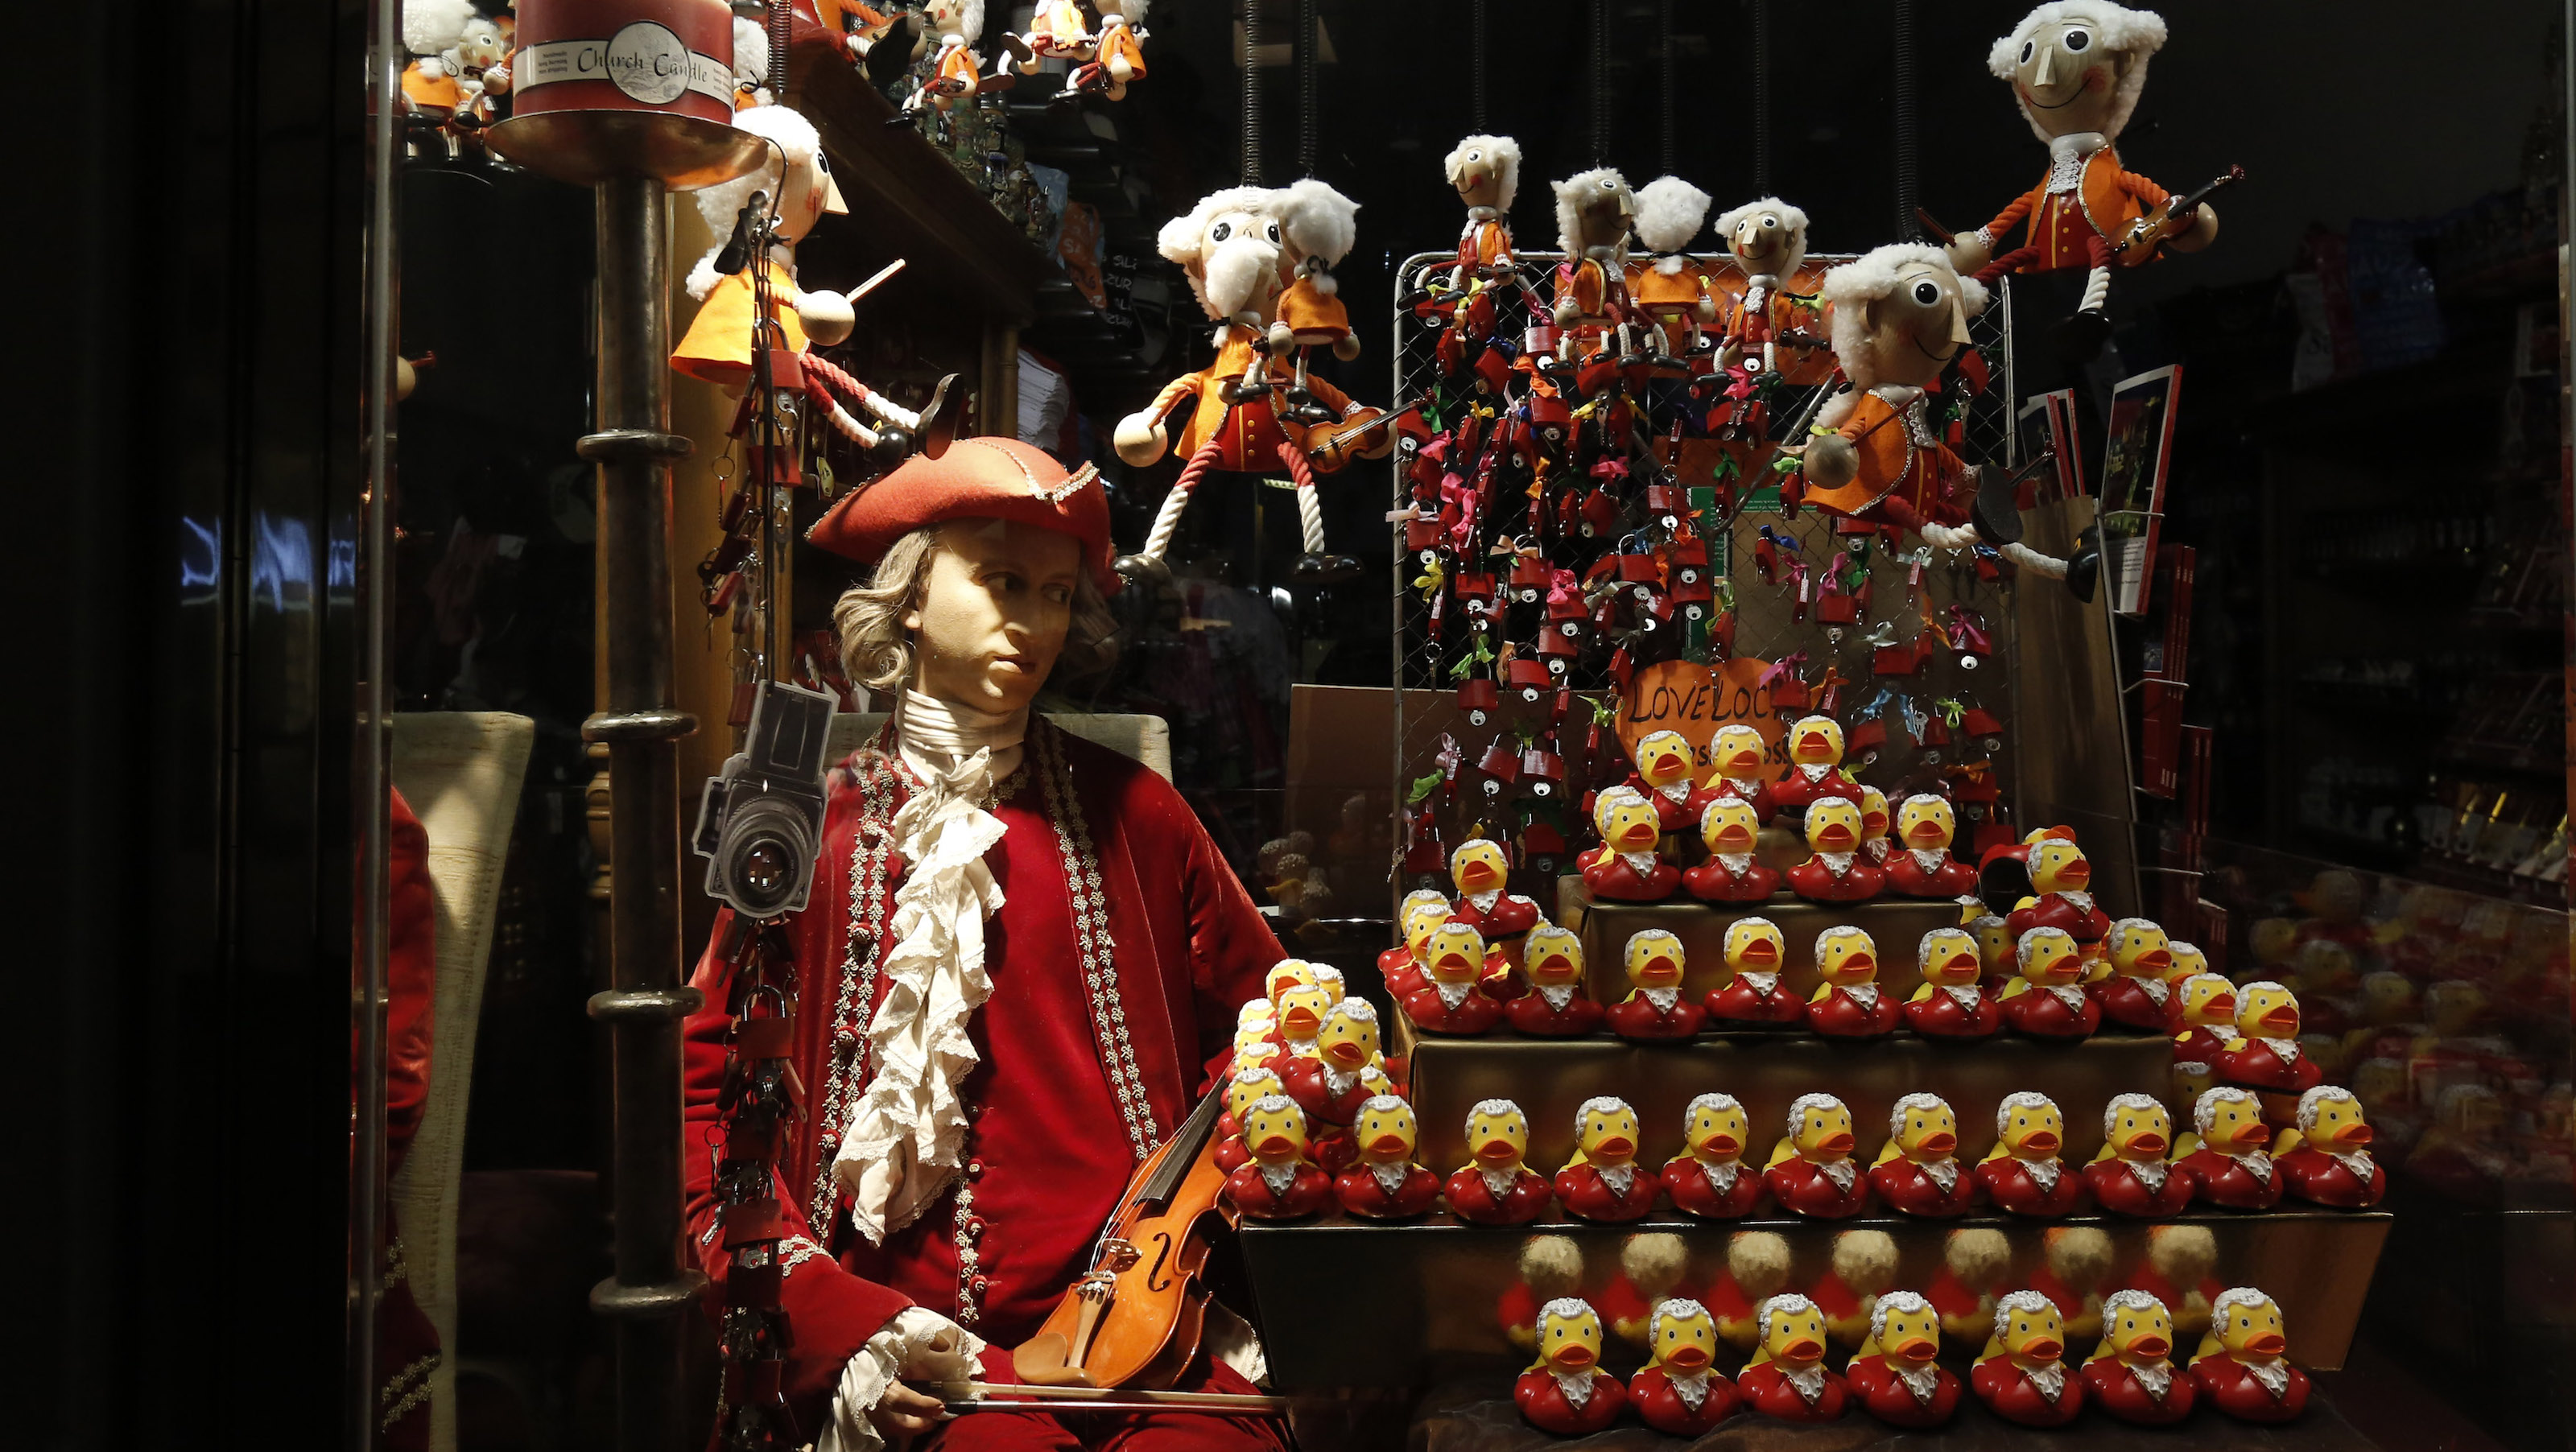 Mozart puppets and Mozart ducks are pictured in a shop in the city of Salzburg July 23, 2014. The Salzburg Festival, one of the biggest cultural festivals worldwide, will take place from July 27 to August 31, 2014. More than 270 performances in the genres of opera, drama and concert are scheduled at 16 performance venues in Salzburg during the festival. Picture taken July 23, 2014. REUTERSLeonhard Foeger (AUSTRIA - Tags: ENTERTAINMENT TPX IMAGES OF THE DAY) - RTR403DG